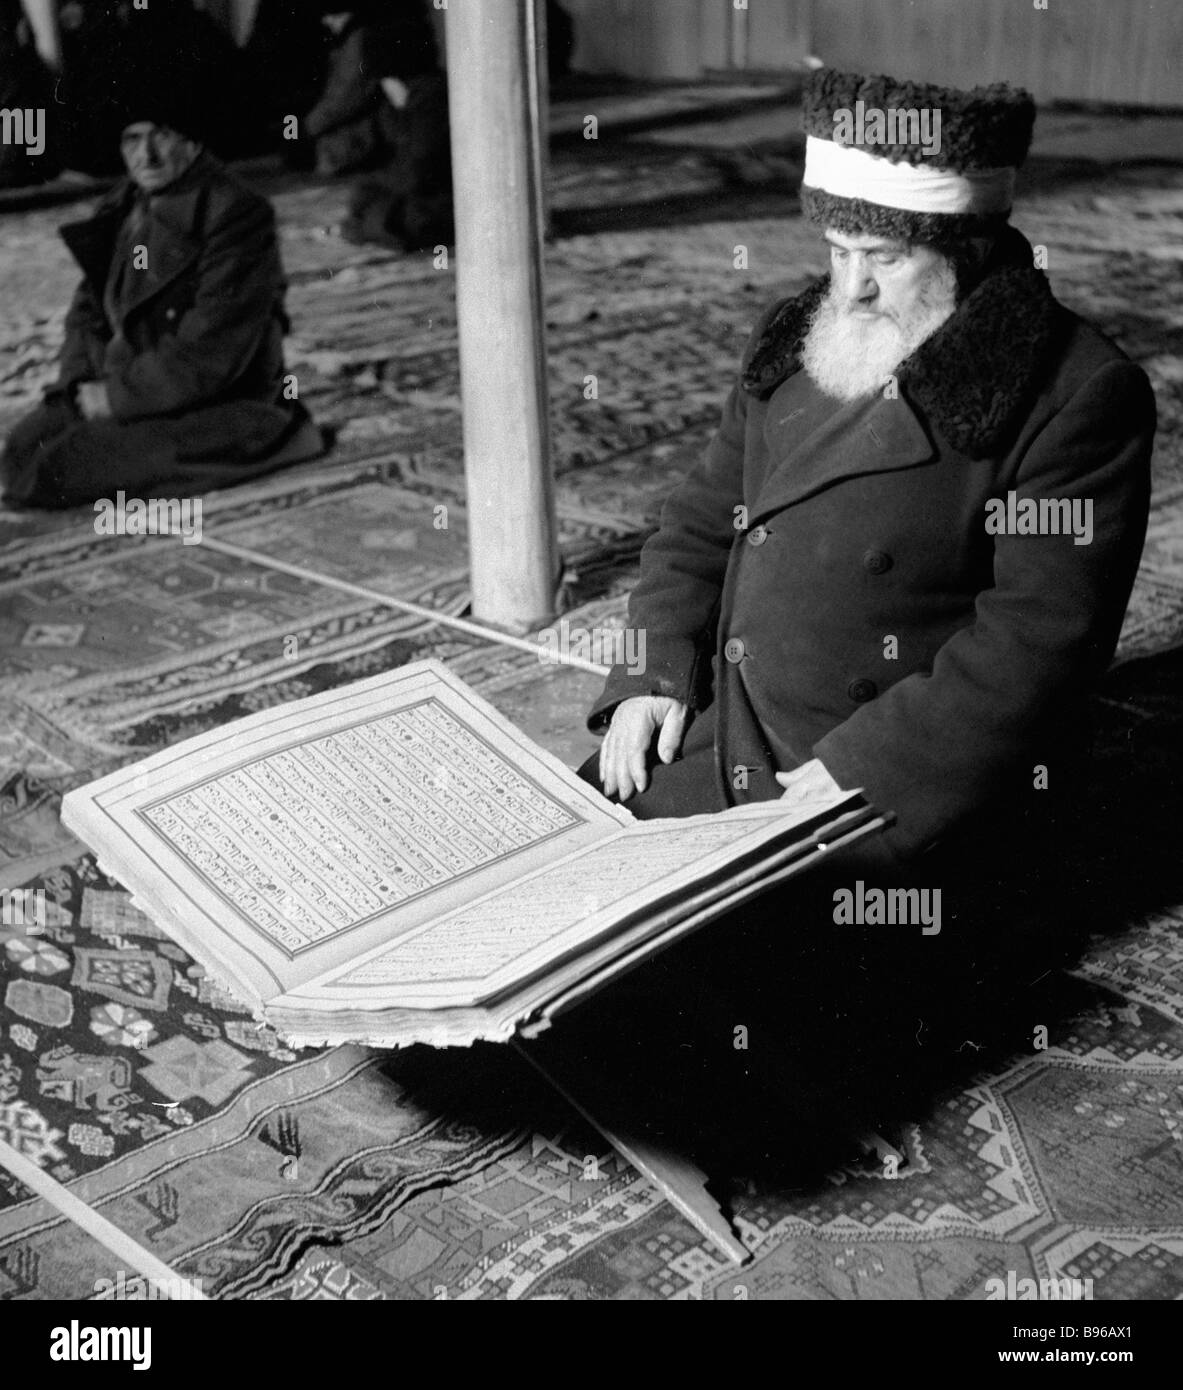 An imam reading the Koran in a mosque - Stock Image